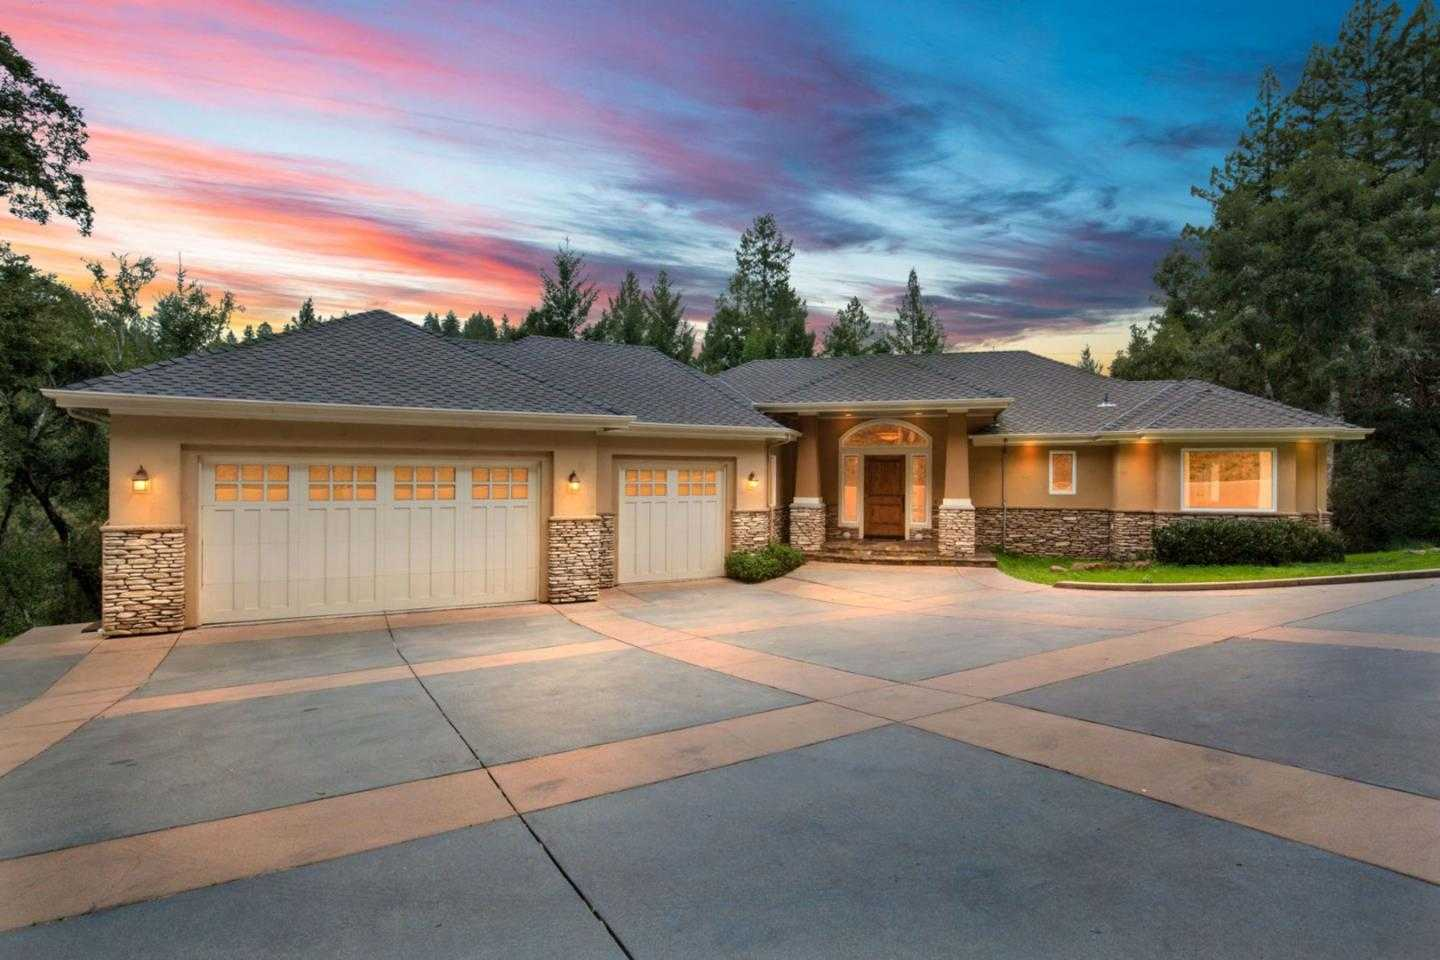 $1,549,000 - 5Br/3Ba -  for Sale in Santa Cruz